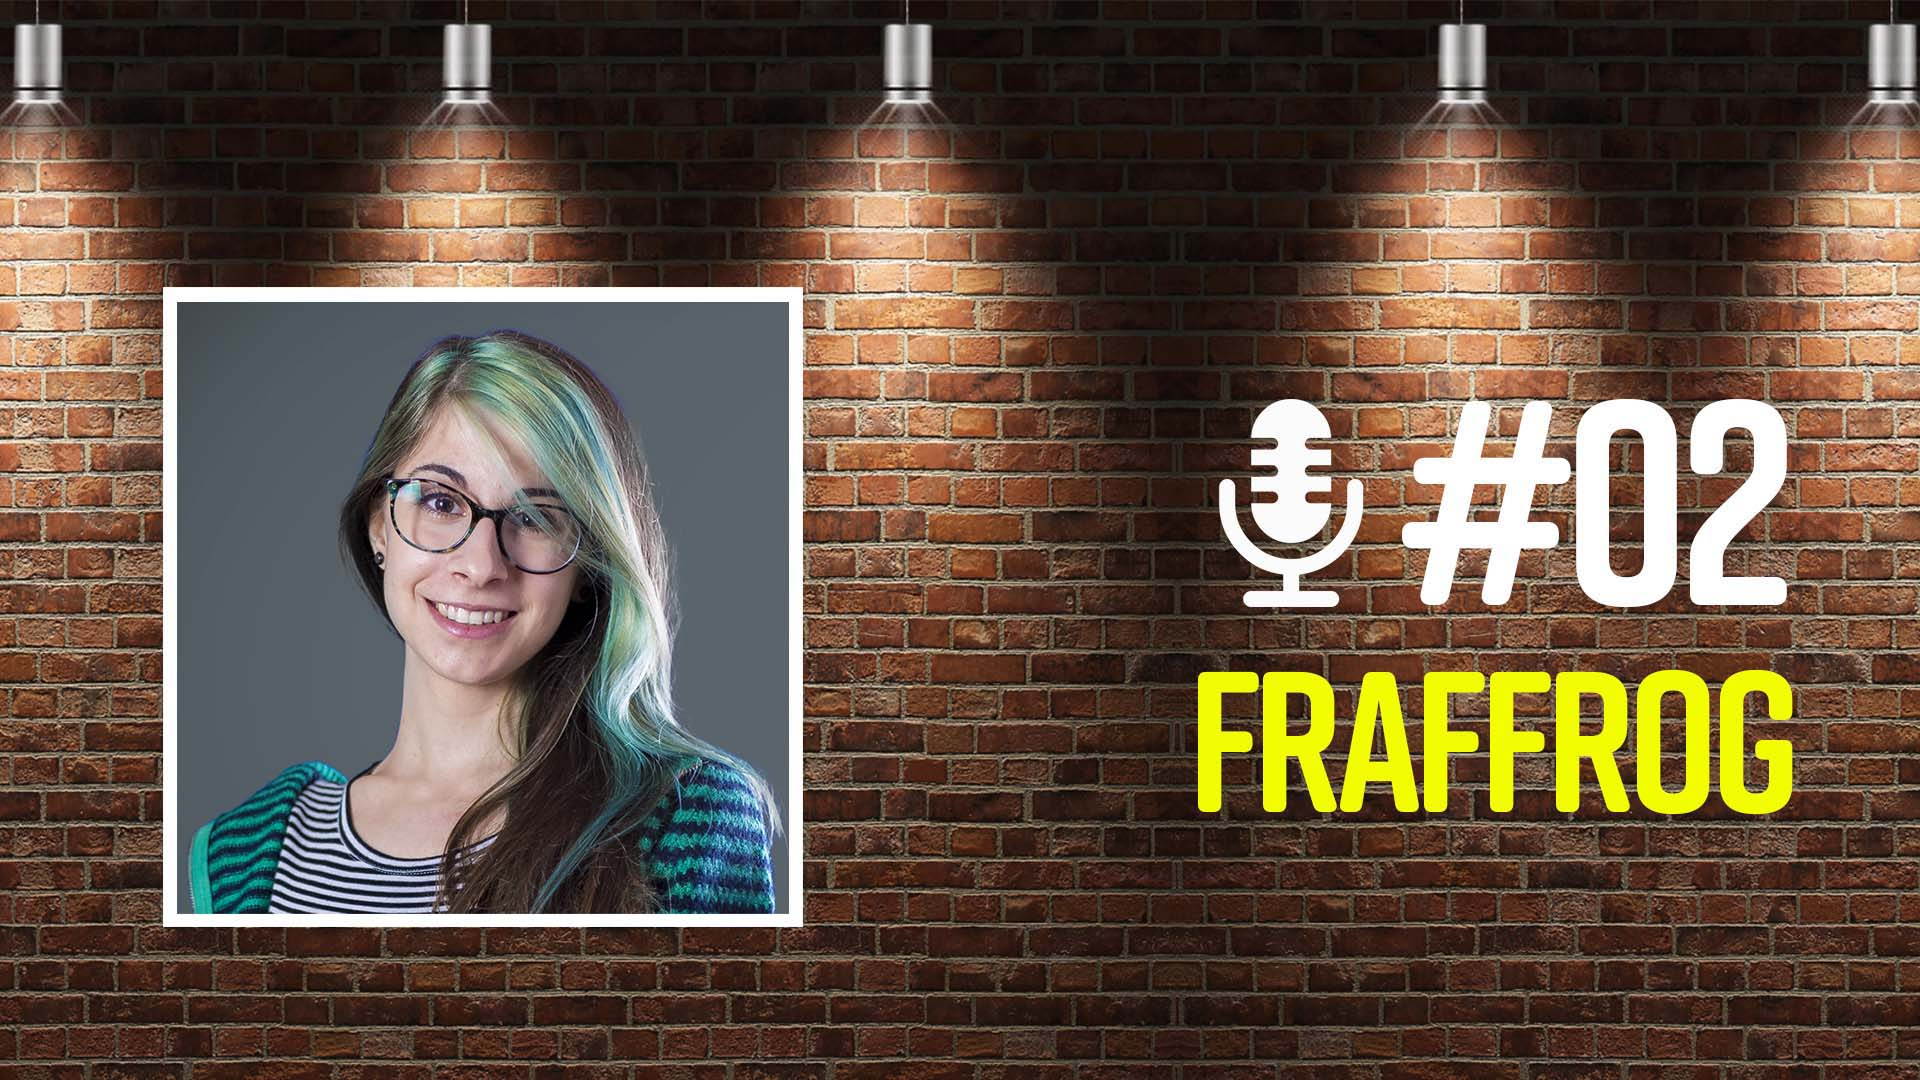 intervista fraffrog podcast